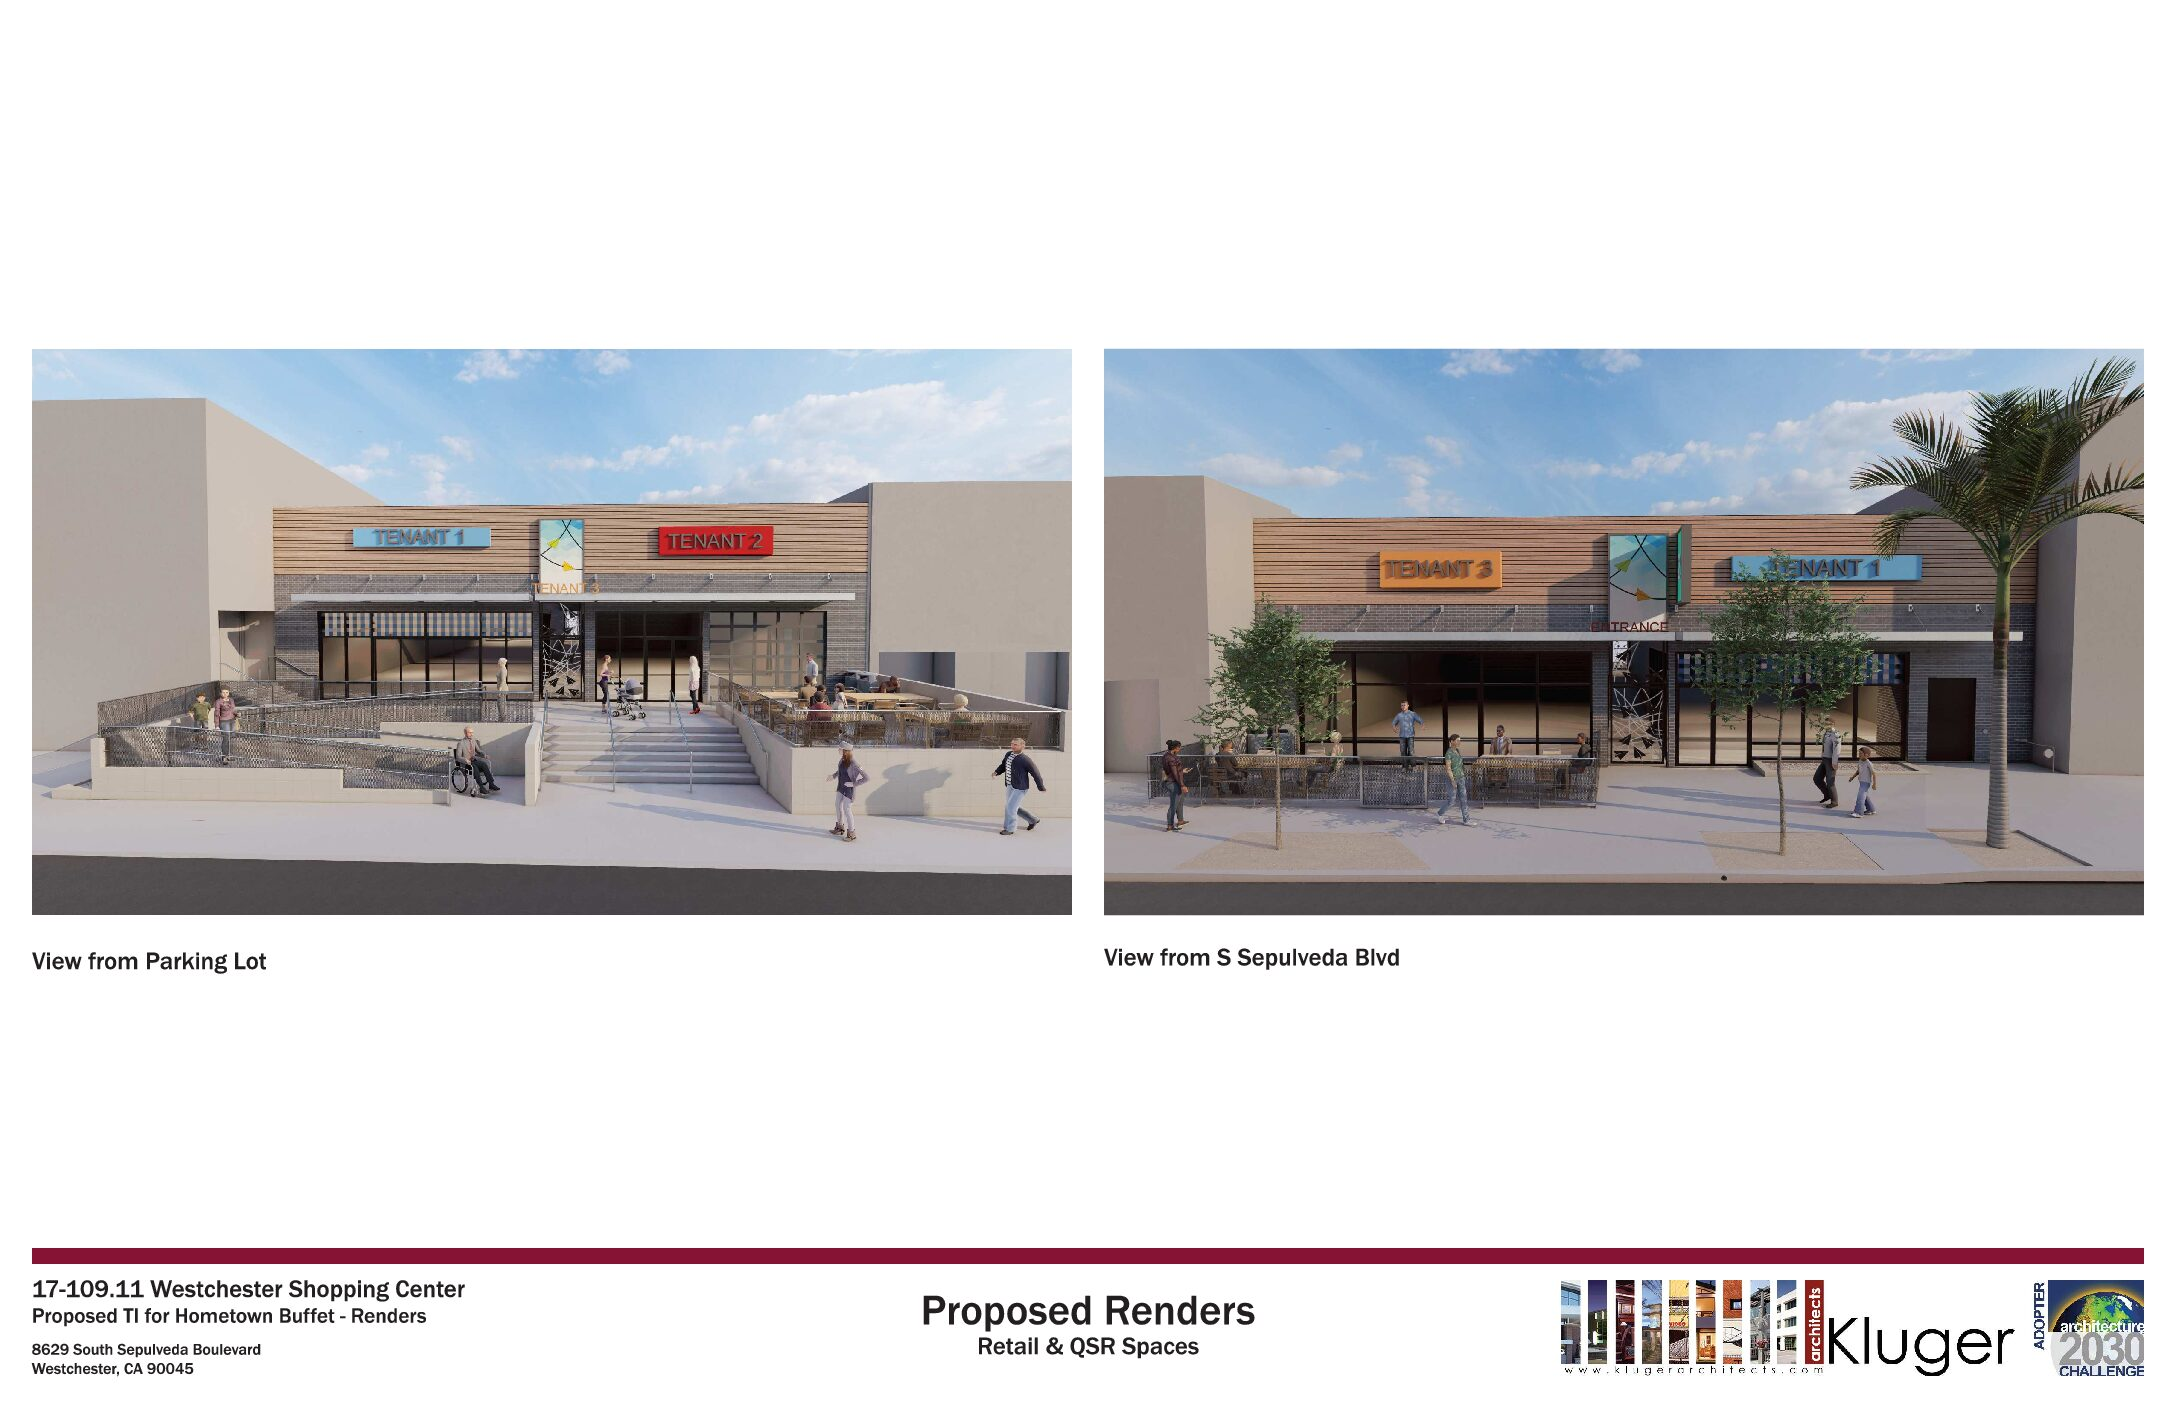 Kluger Architects Completes Designs for Westchester Shopping Center Improvements